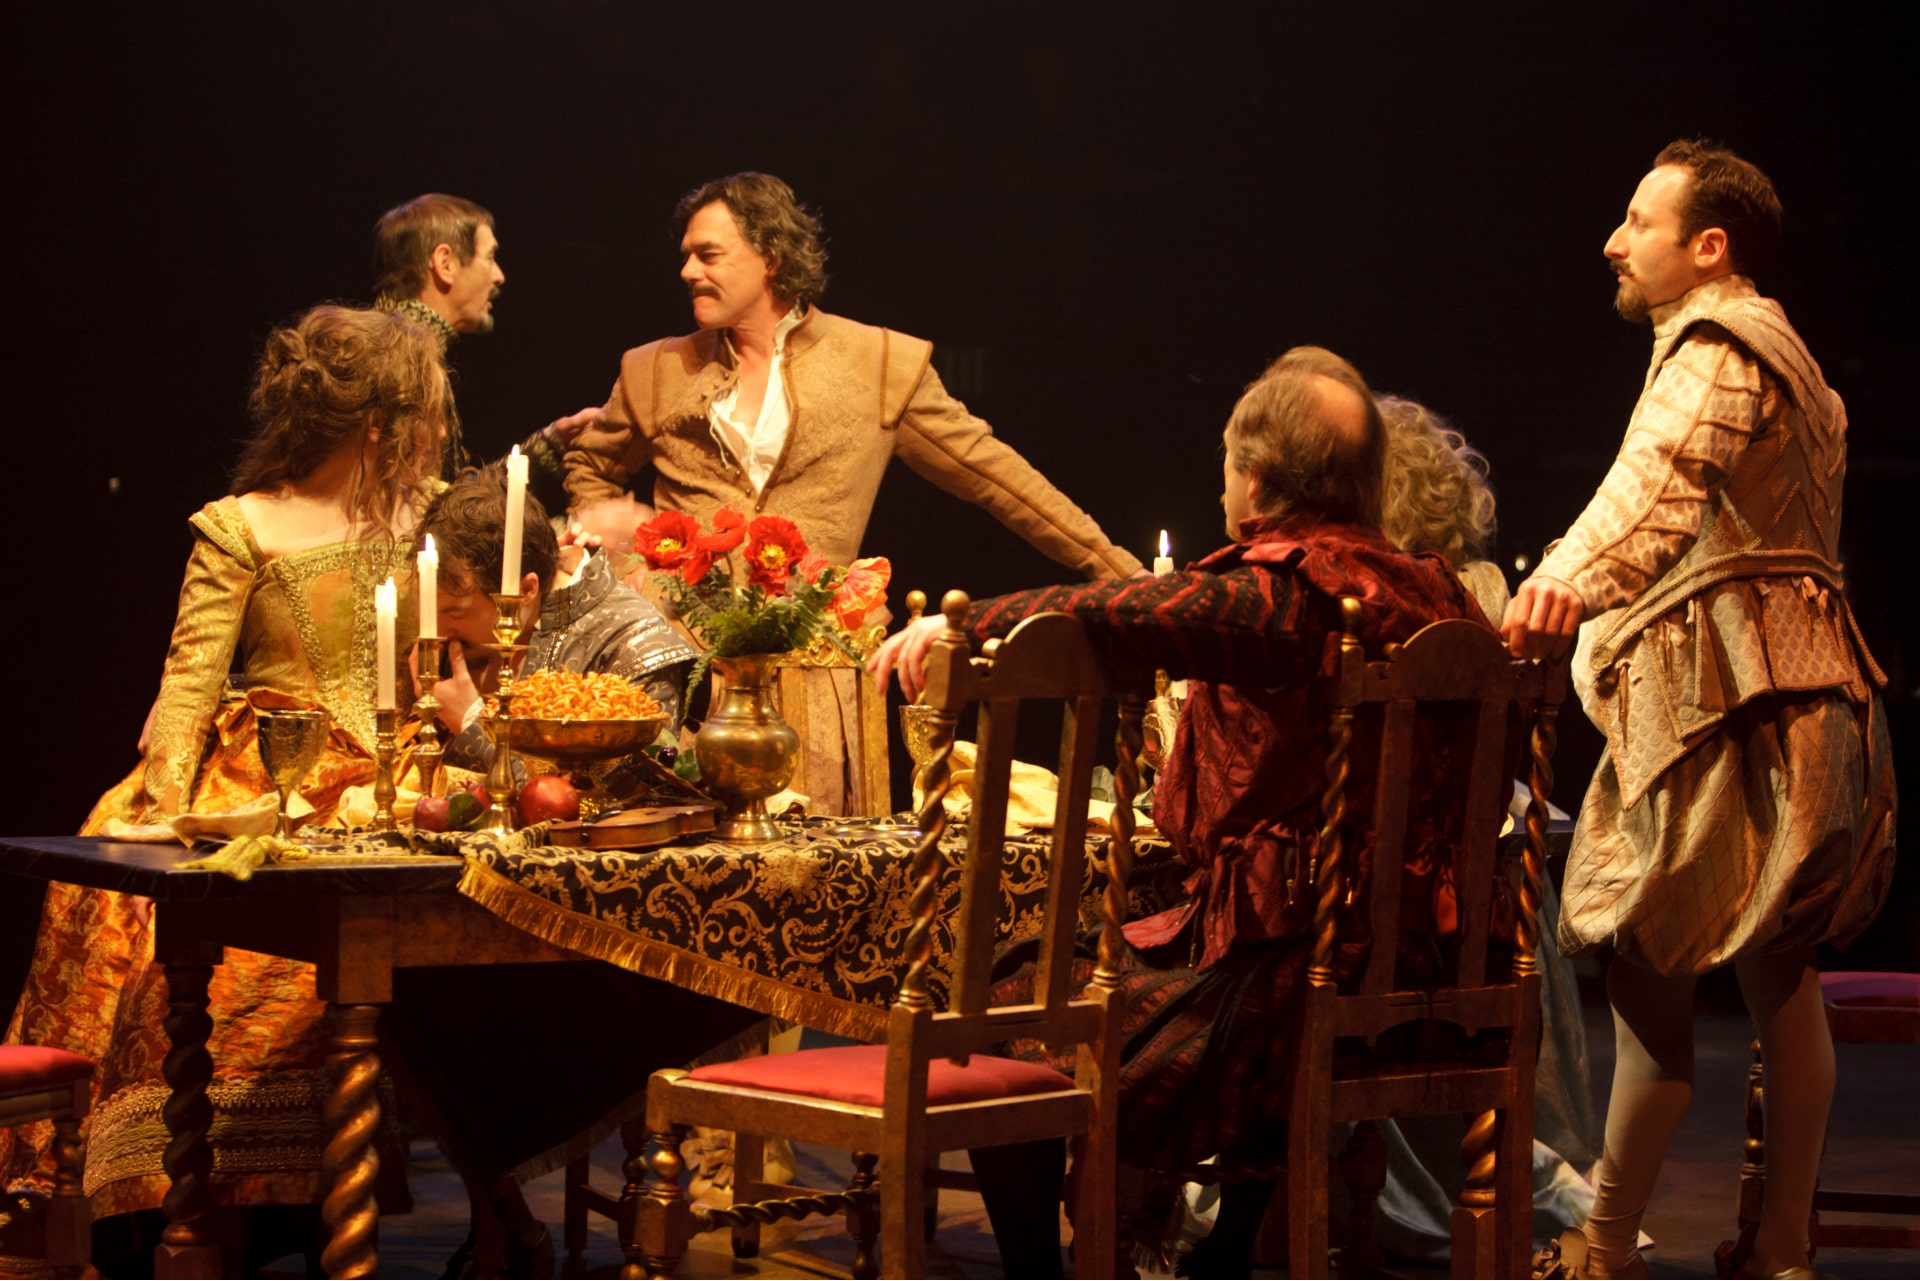 Seven people in fancy attire gathered for elaborate candle-lit dinner.